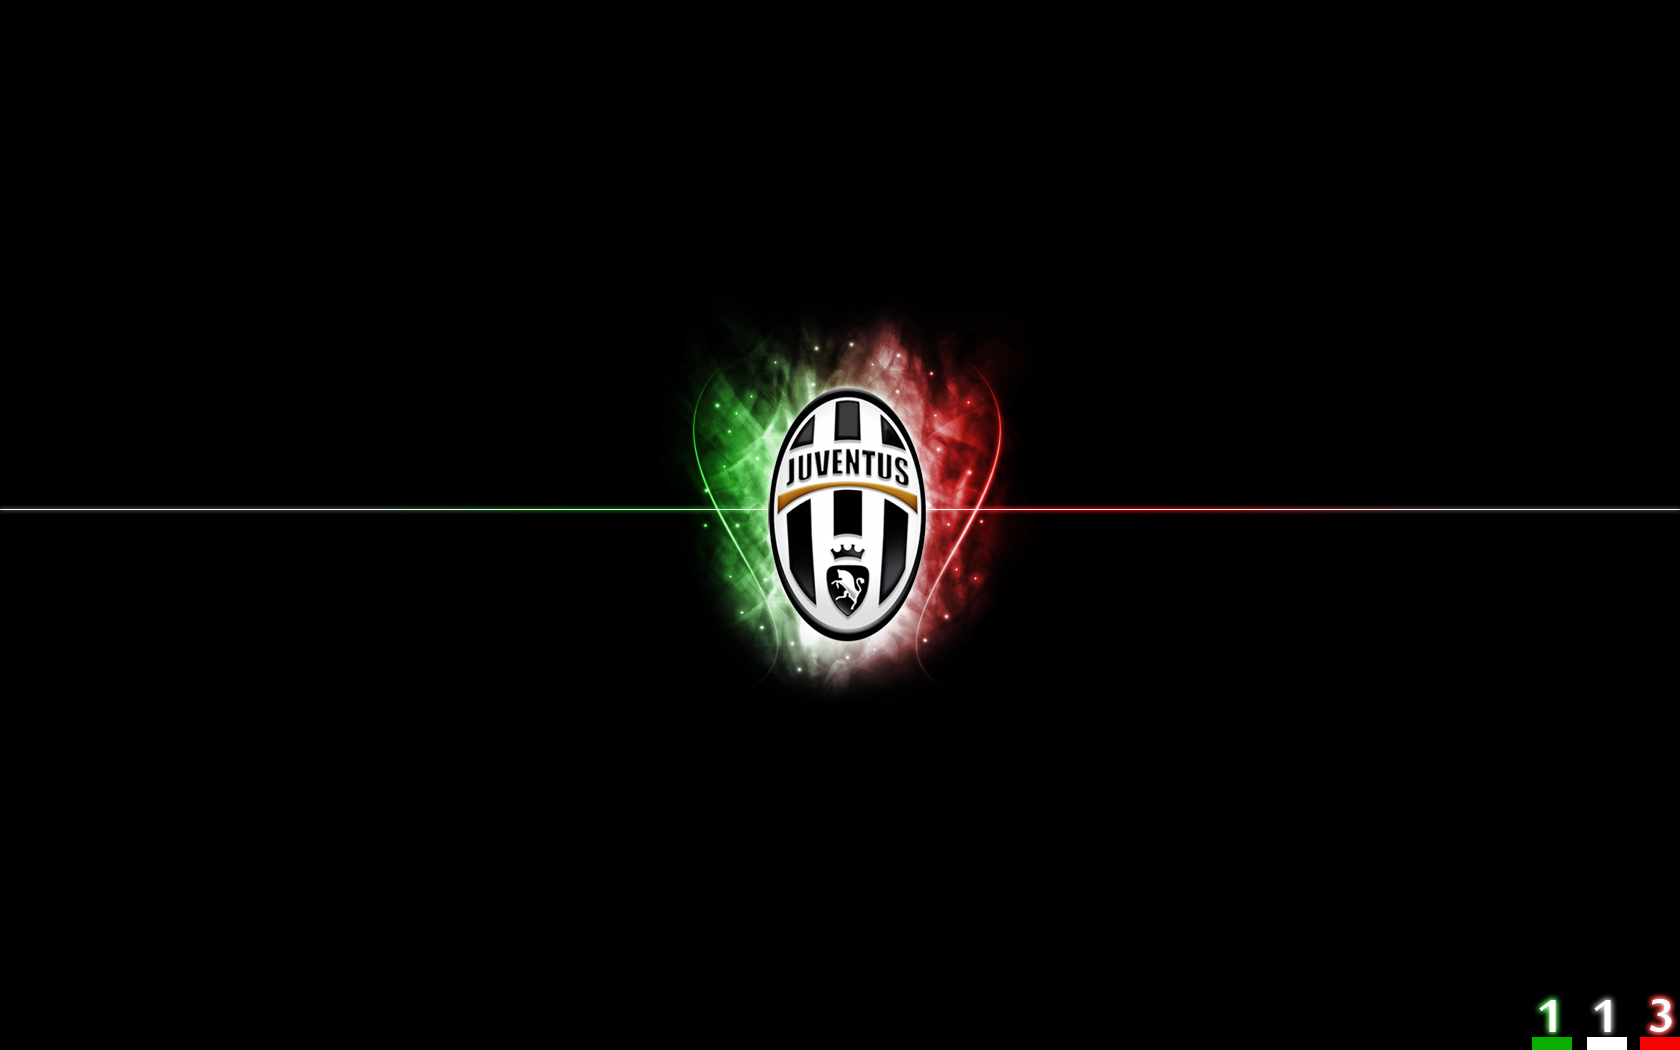 Pin Juventus Wallpaper 2011 Football Hi Res on Pinterest